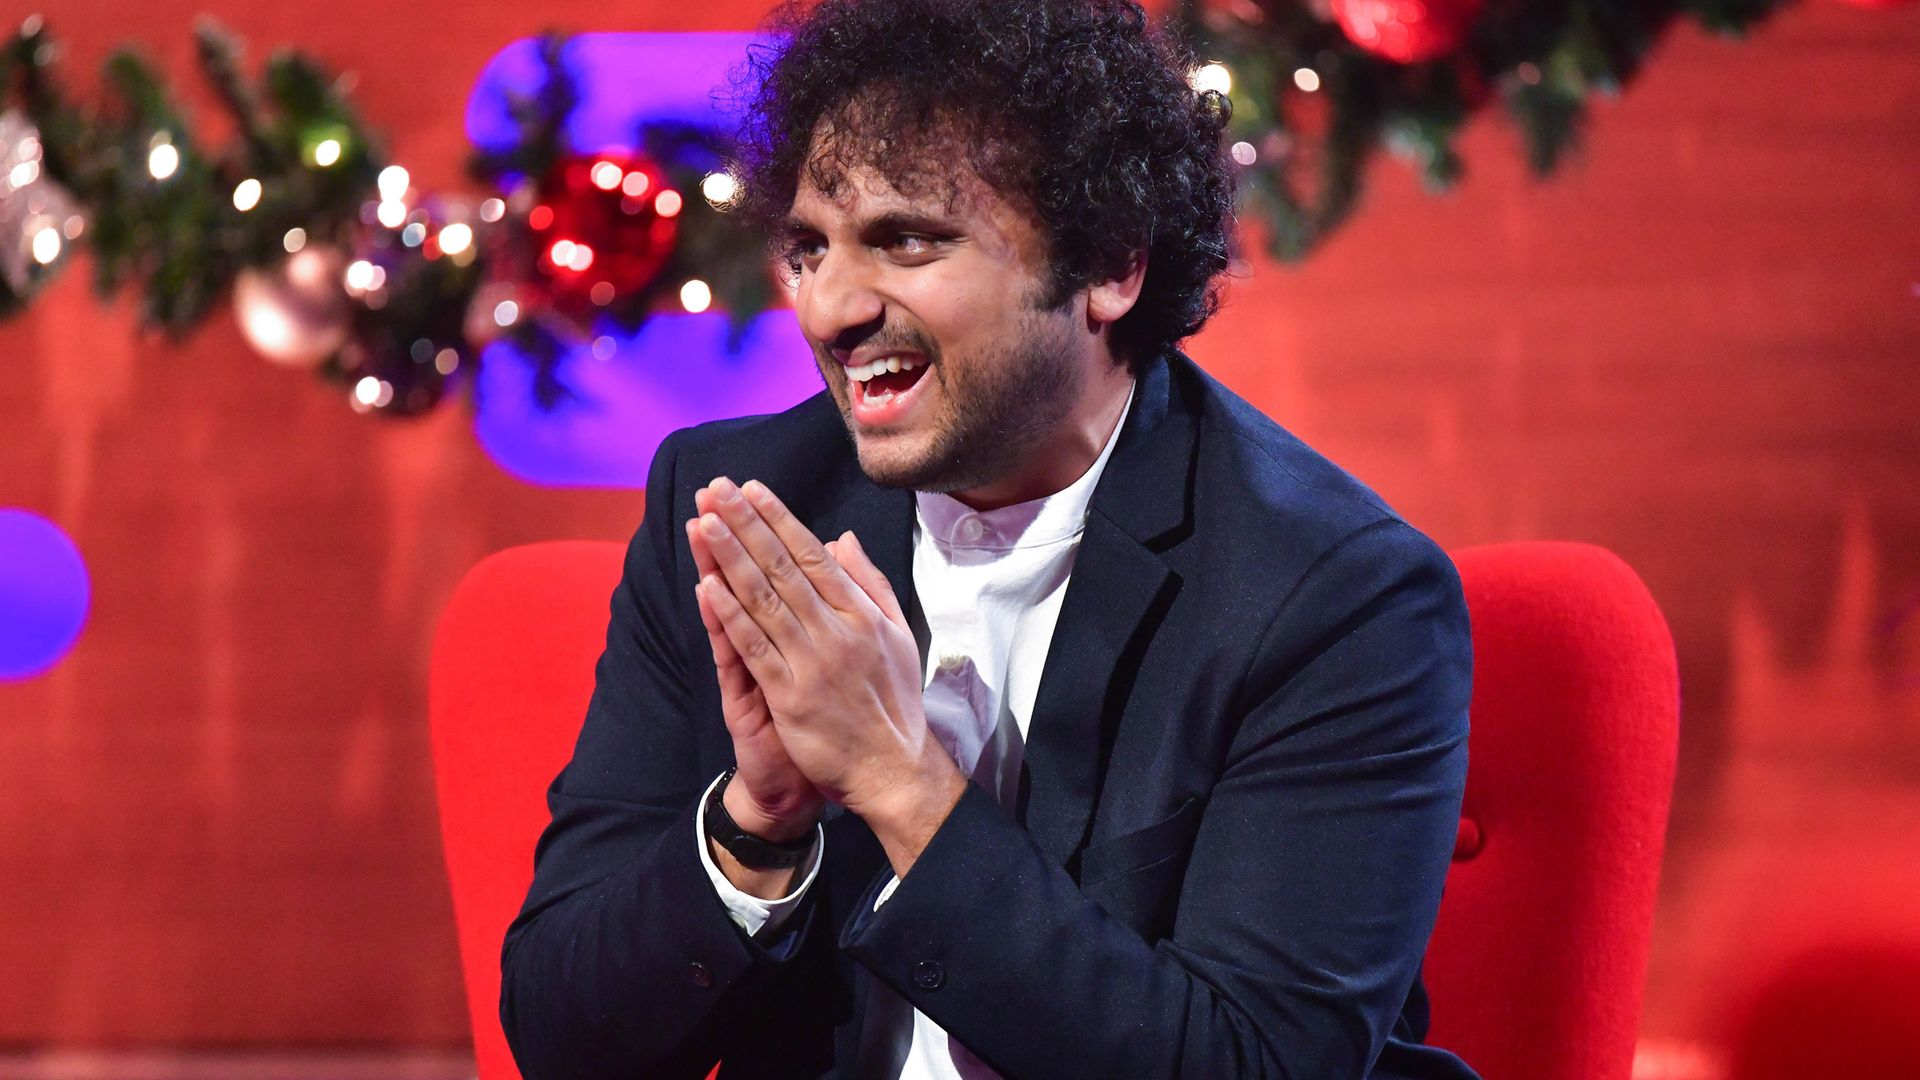 Nish Kumar during the filming for the Graham Norton Show - Credit: PA